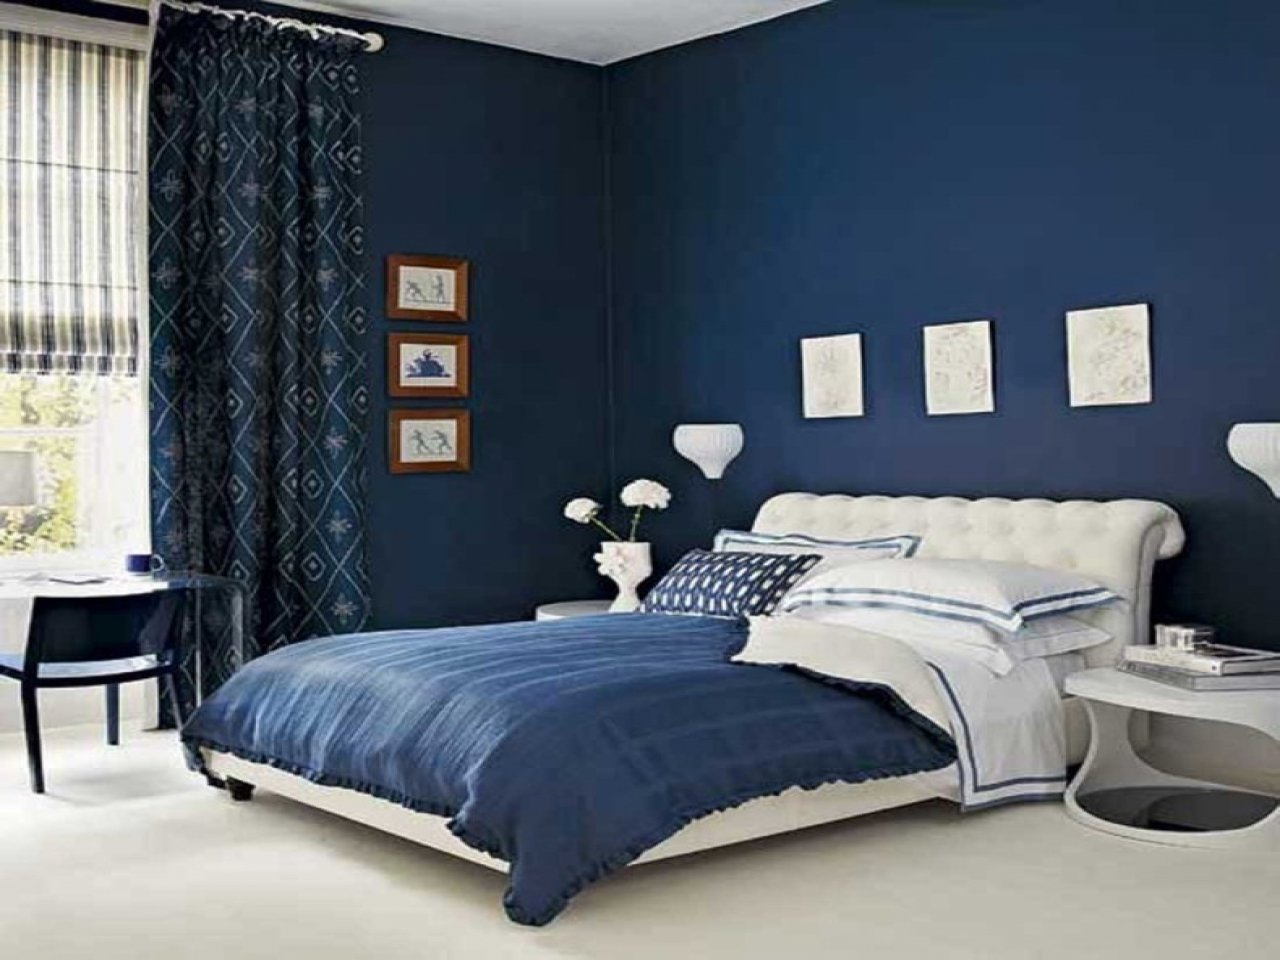 navy dark blue bedroom design ideas pictures dark 16500 | navy dark blue bedroom design ideas pictures dark navy blue backgrounds 76f7748a548c0a3a 1